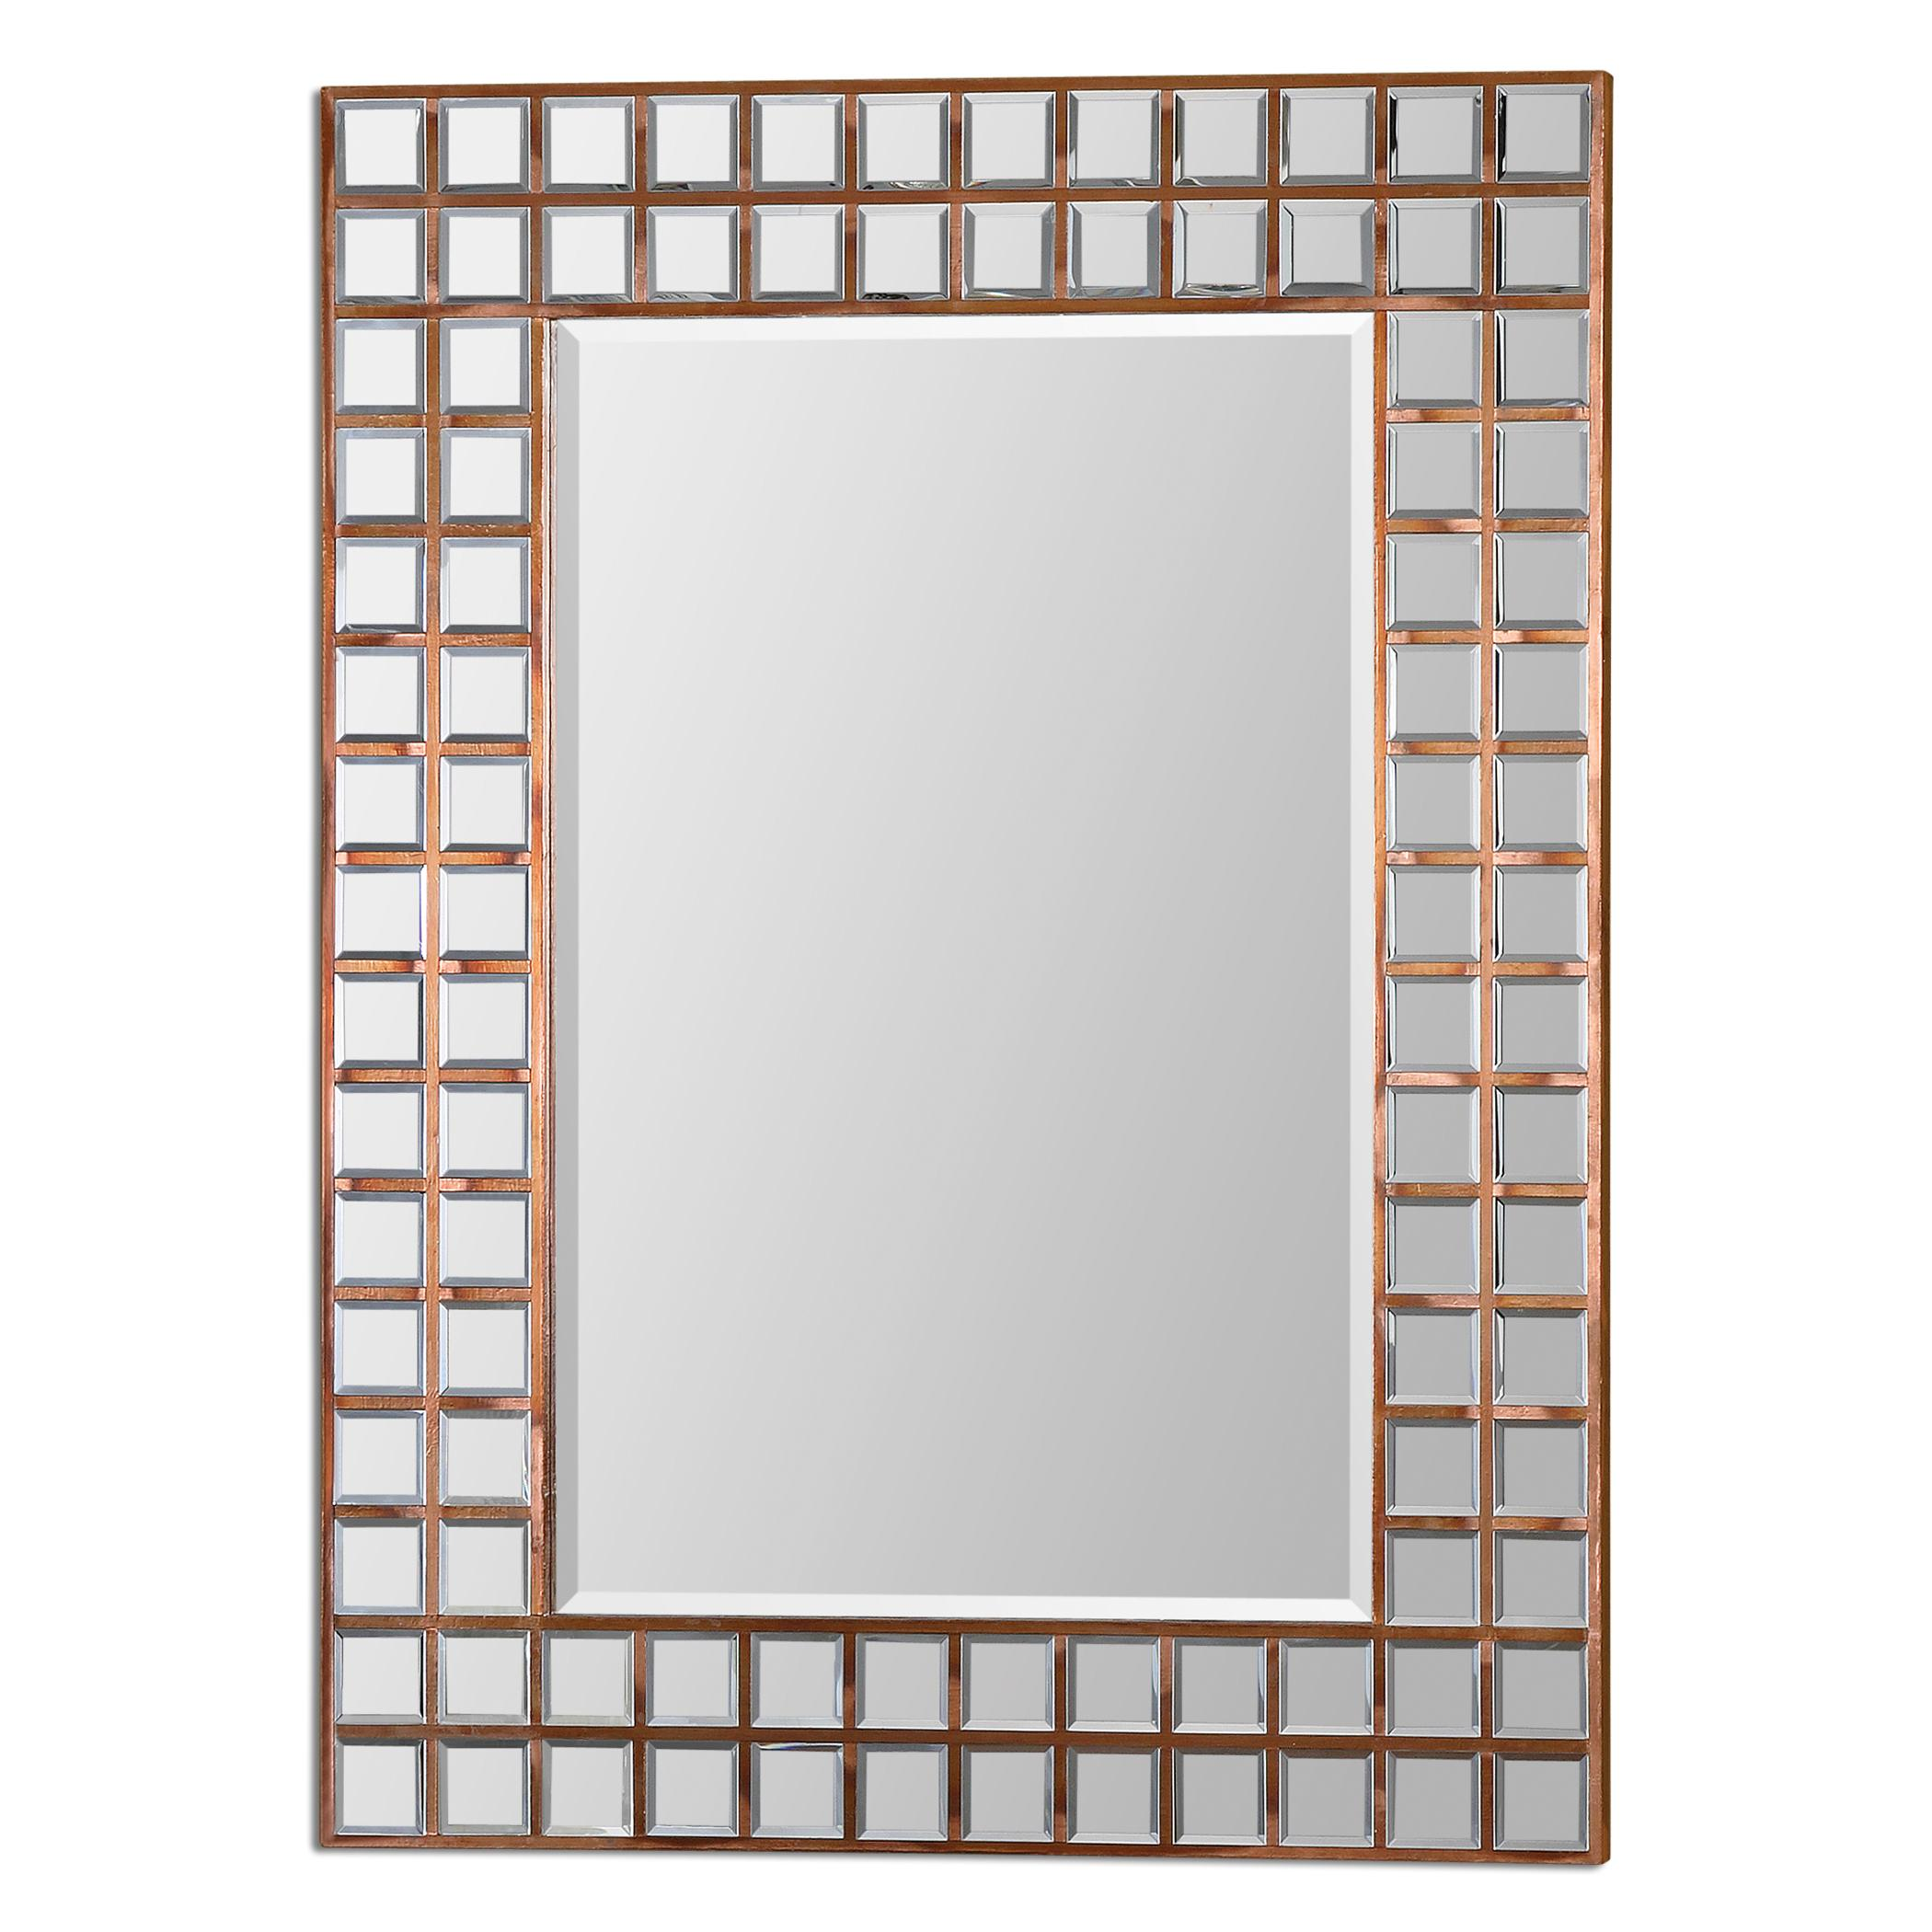 Uttermost Mirrors Keely Mosaic Mirror - Item Number: 07063